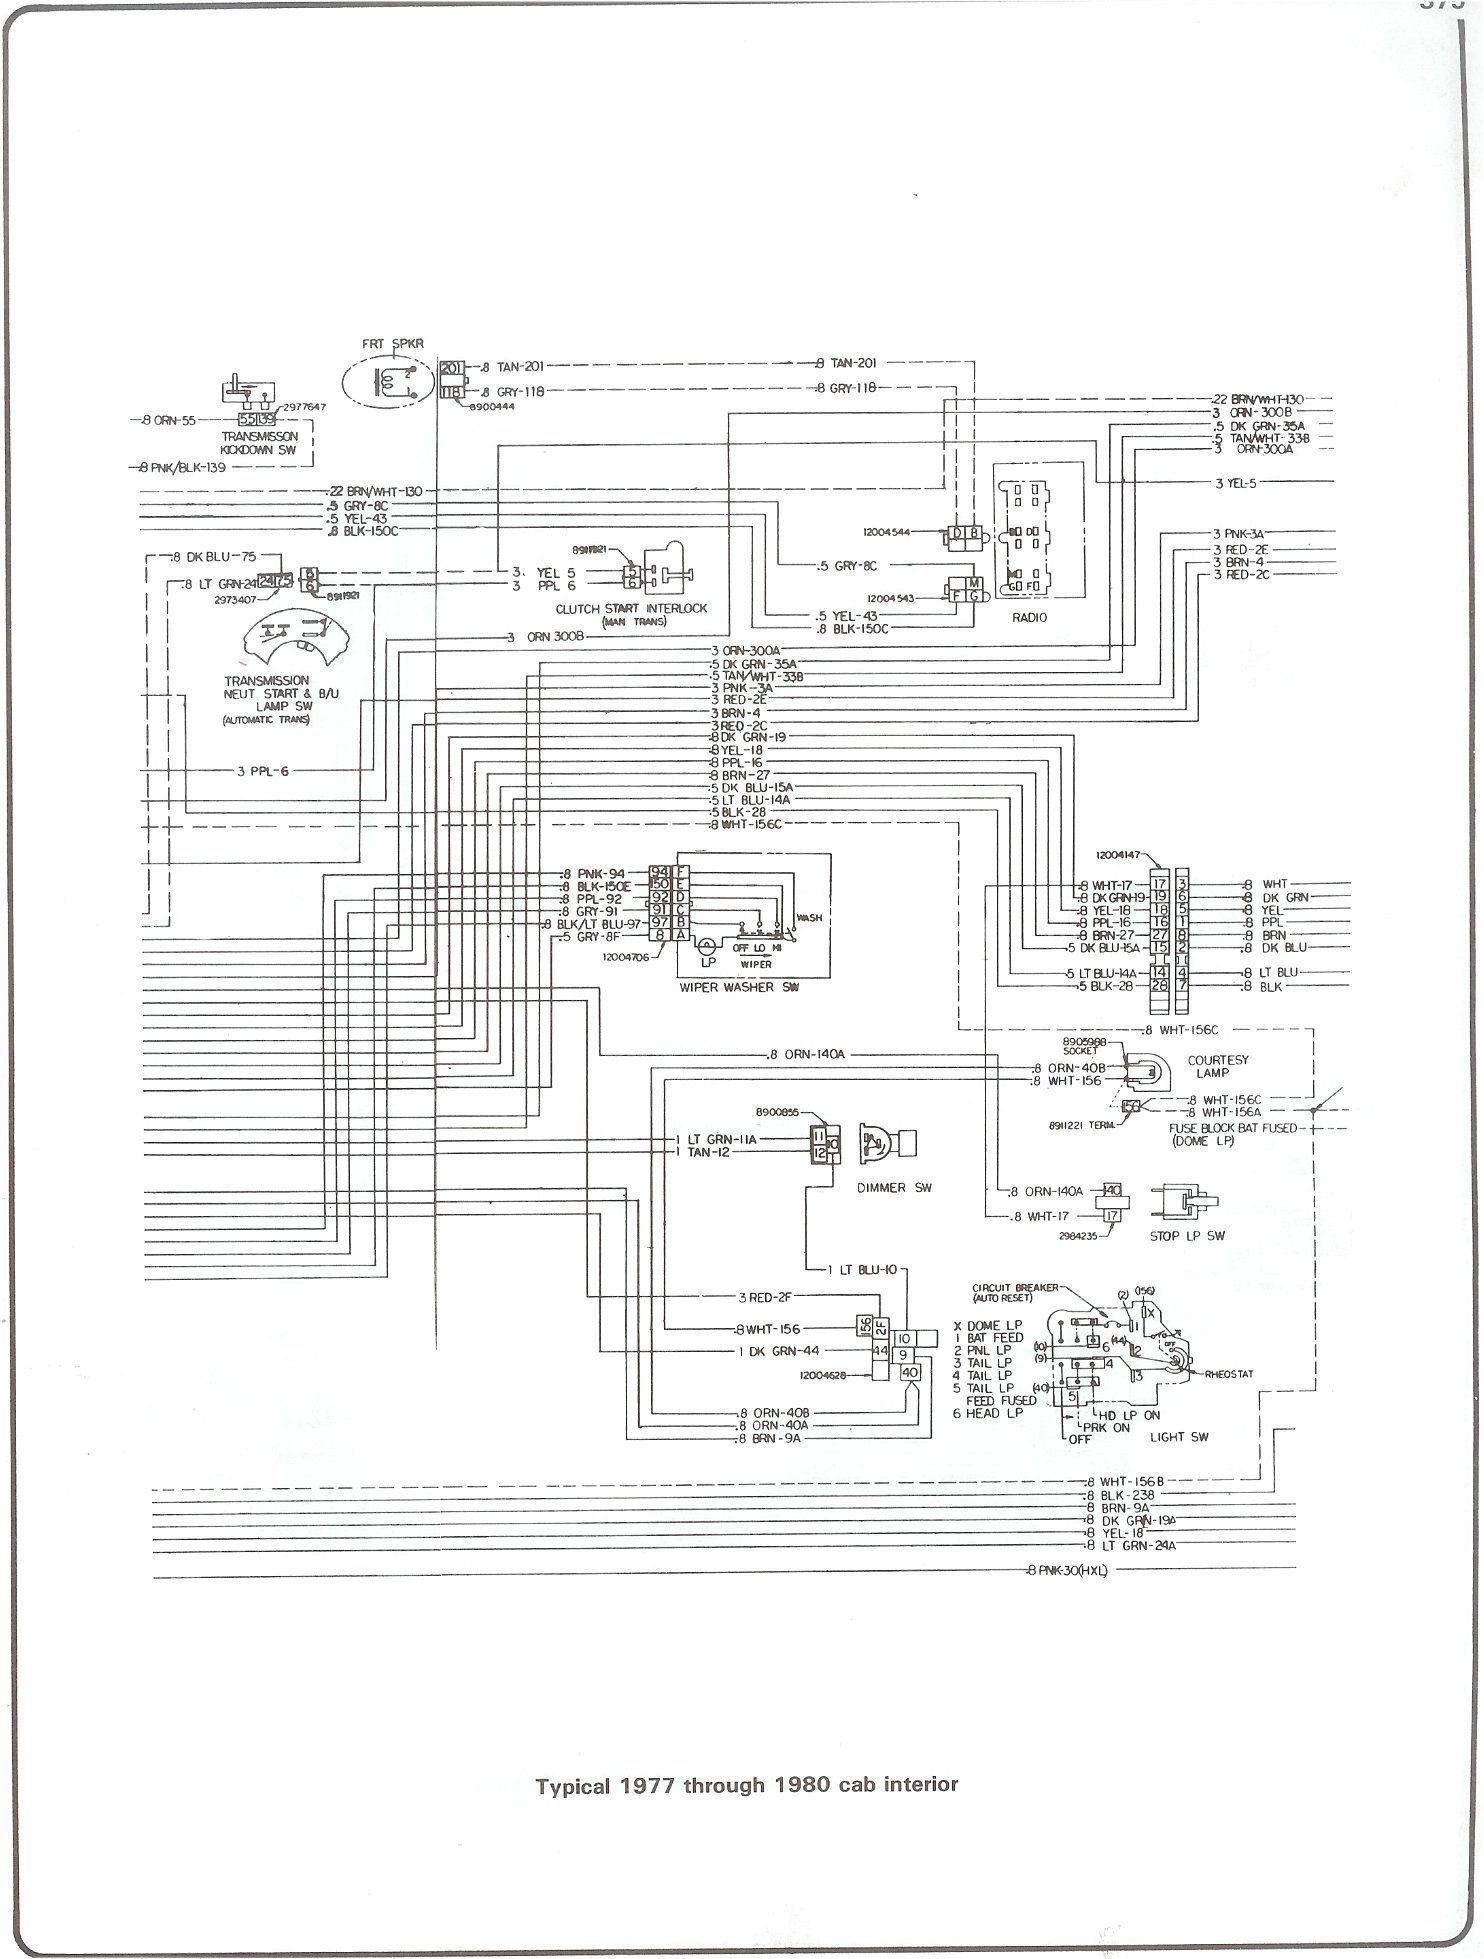 Complete 73 87 Wiring Diagrams 1985 Gmc Jimmy Diagram 77 80 Cab Interior